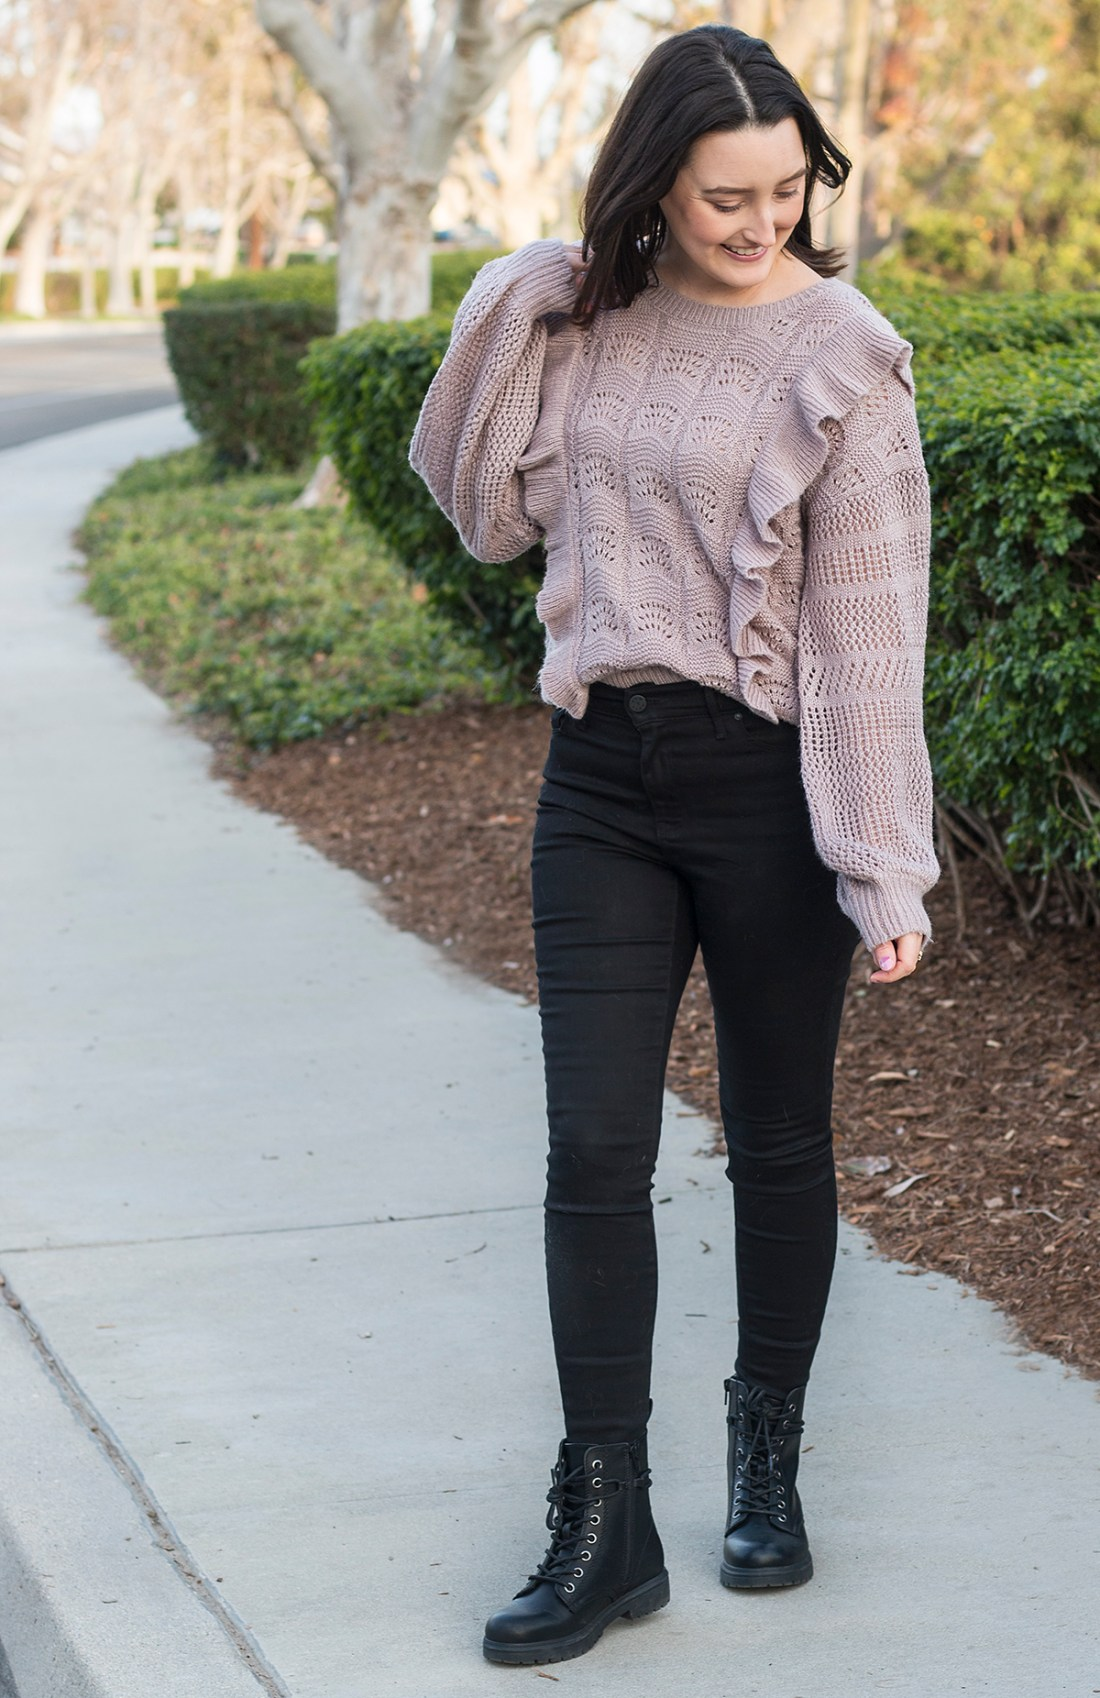 Winter Ruffled Sweater & Combat Boots | A Good Hue